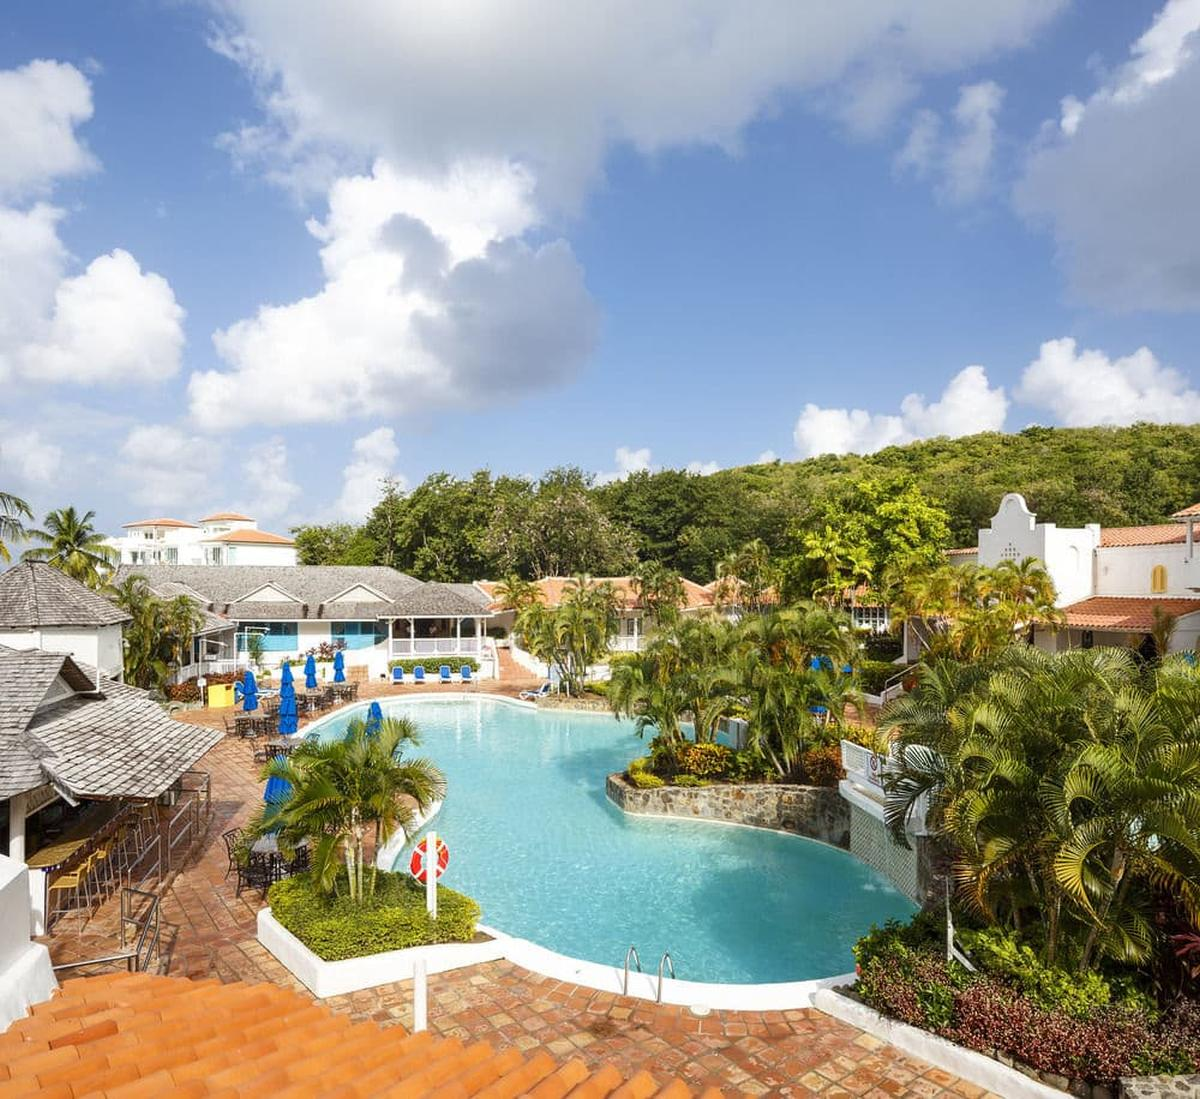 content/hotel/St. Lucia hotelek/Windjammer Landing Villa Beach Resort/Our/windjammerlandingvillabeachresort-our-01.jpg